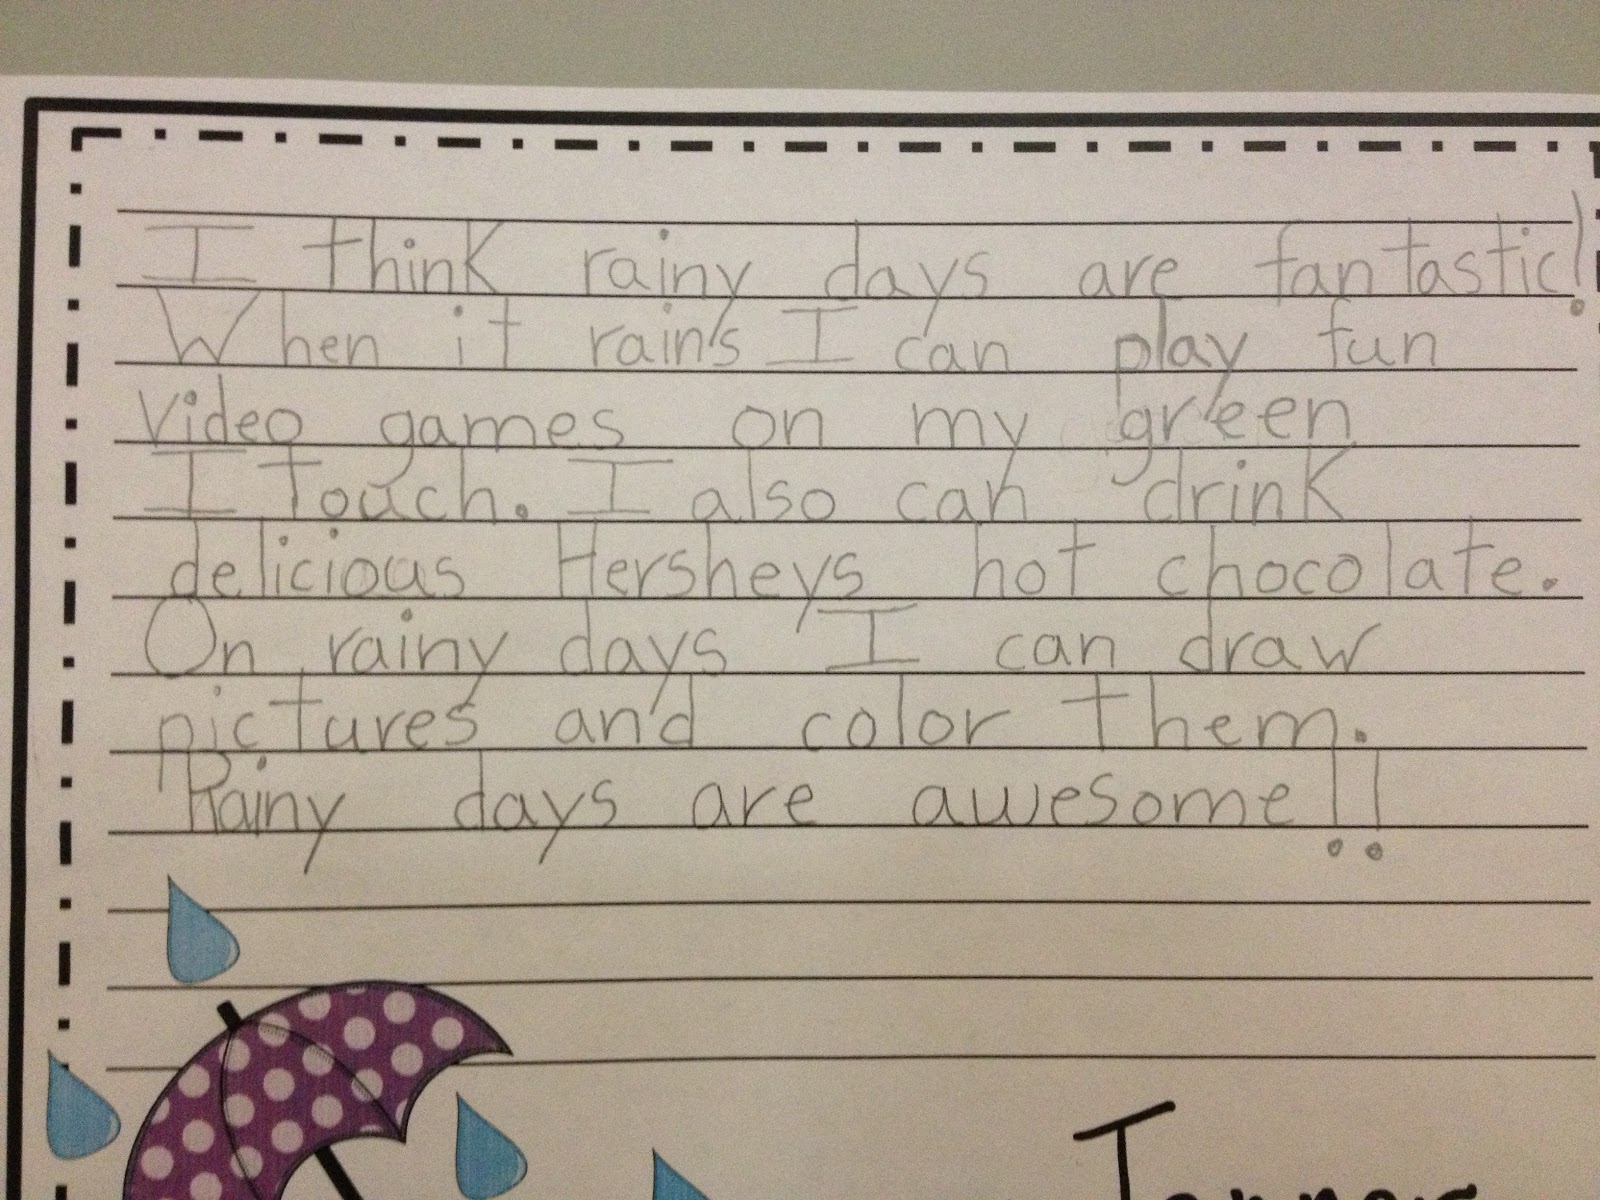 A rainy day essay for kids